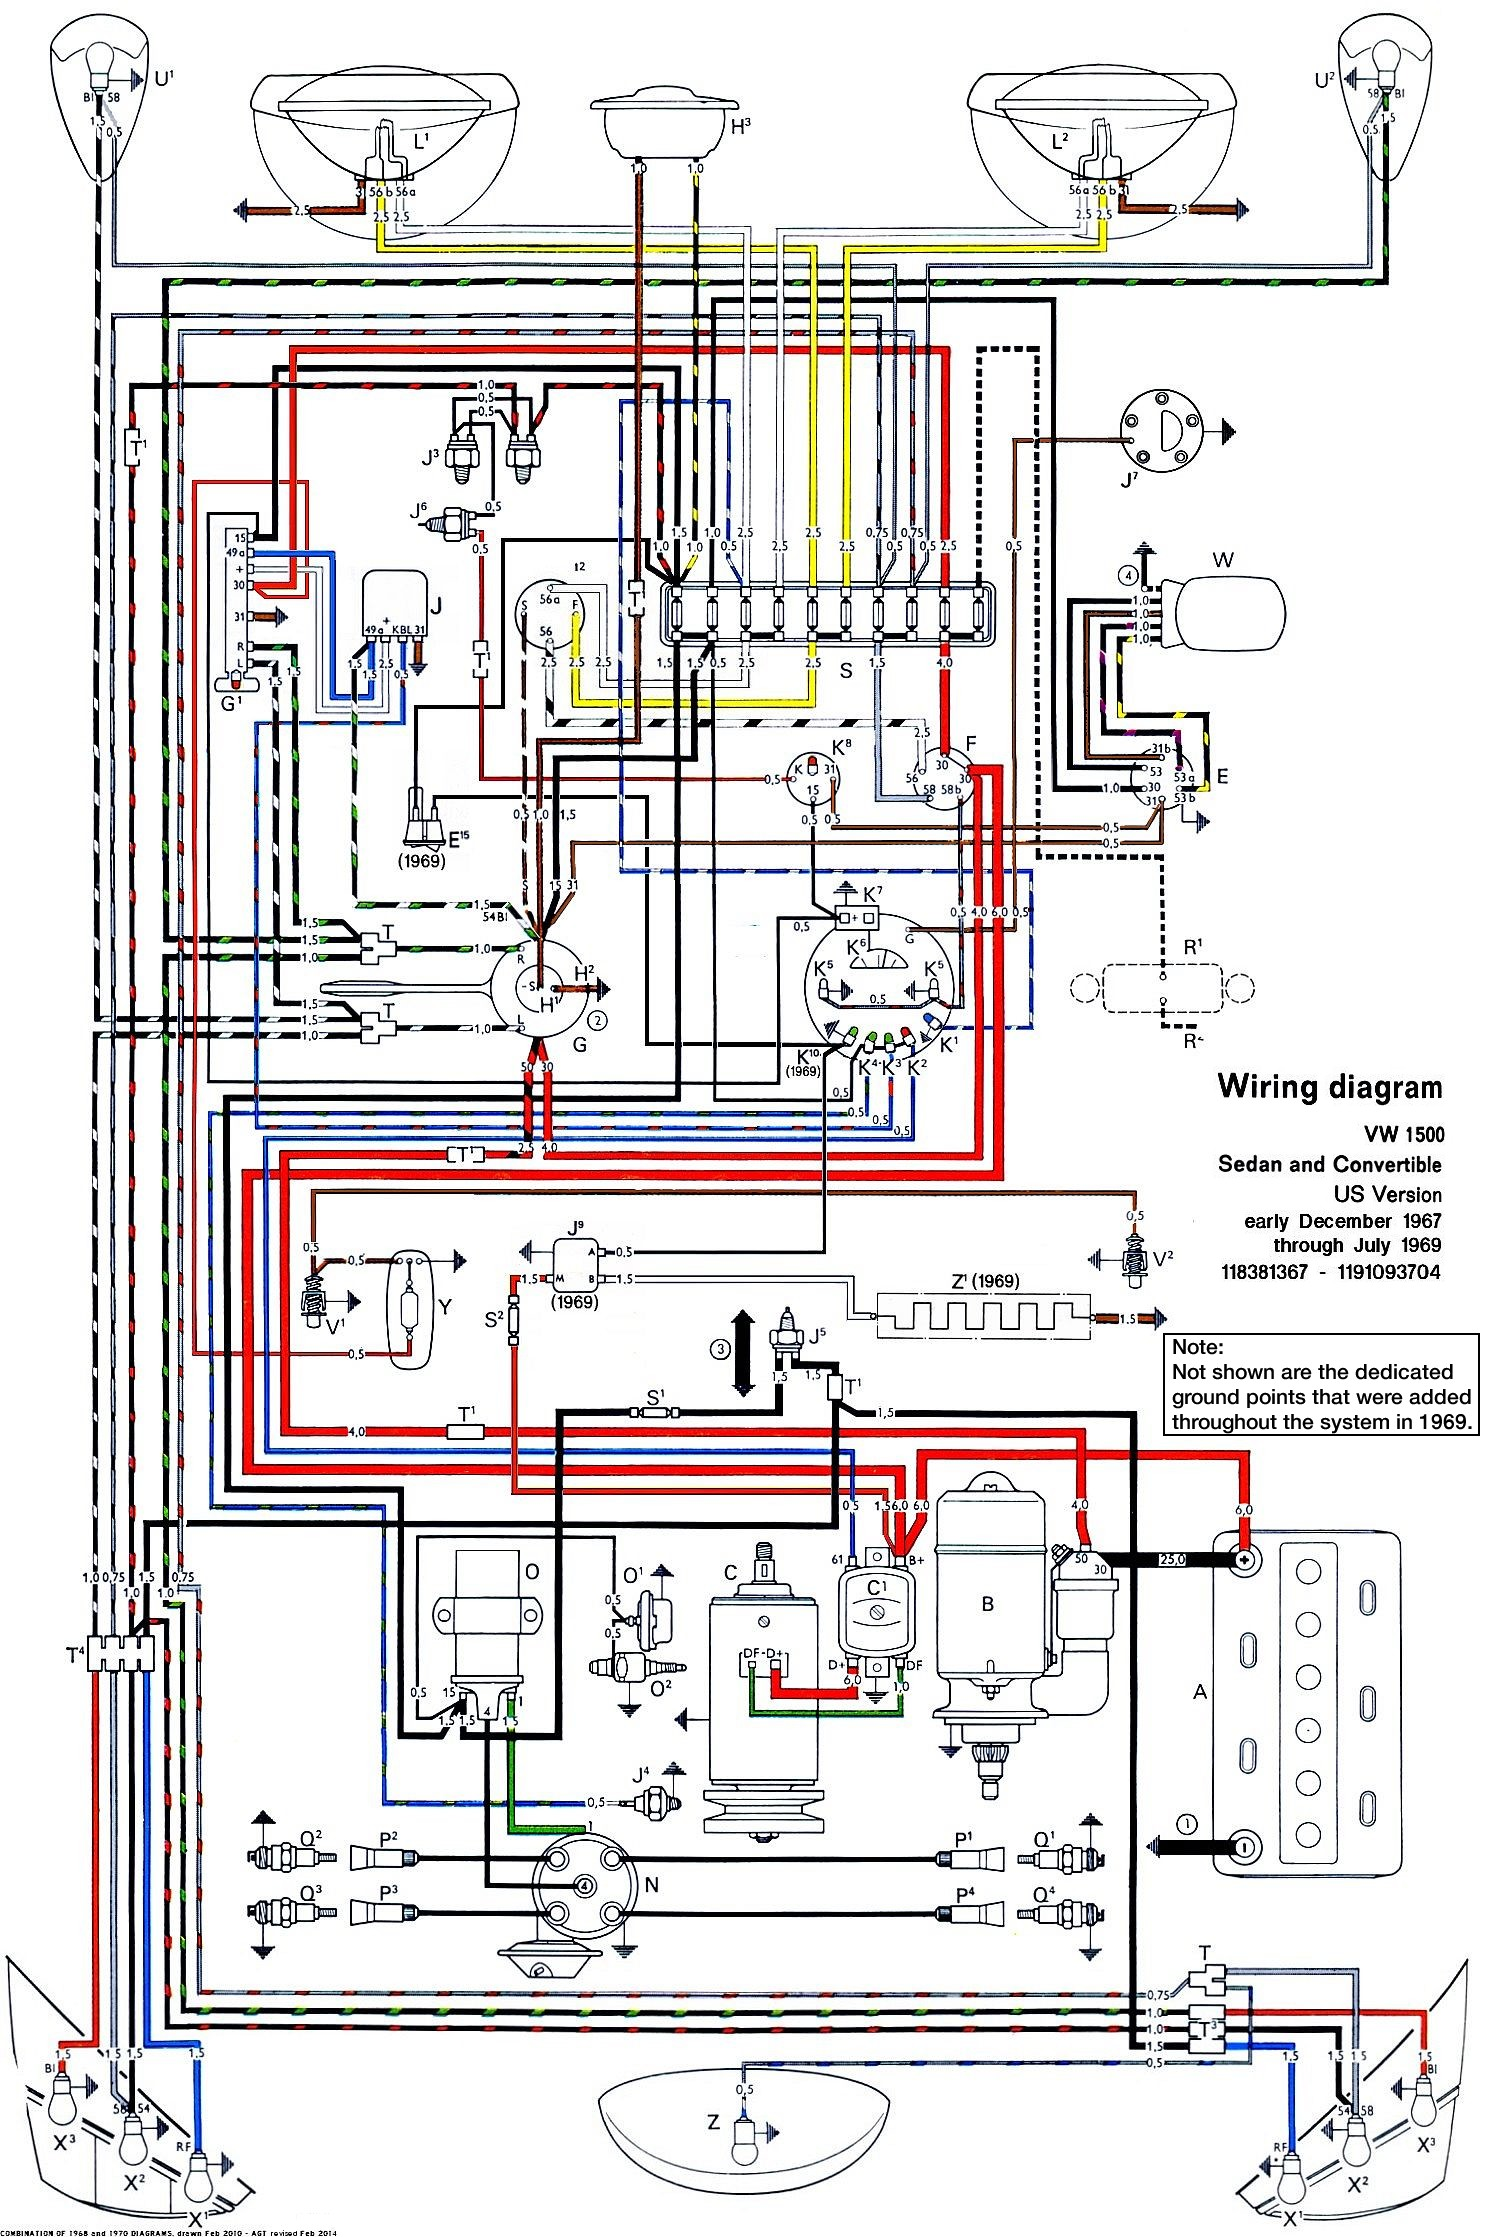 Wiring Diagram For 1969 Vw Beetle Wiring Diagram